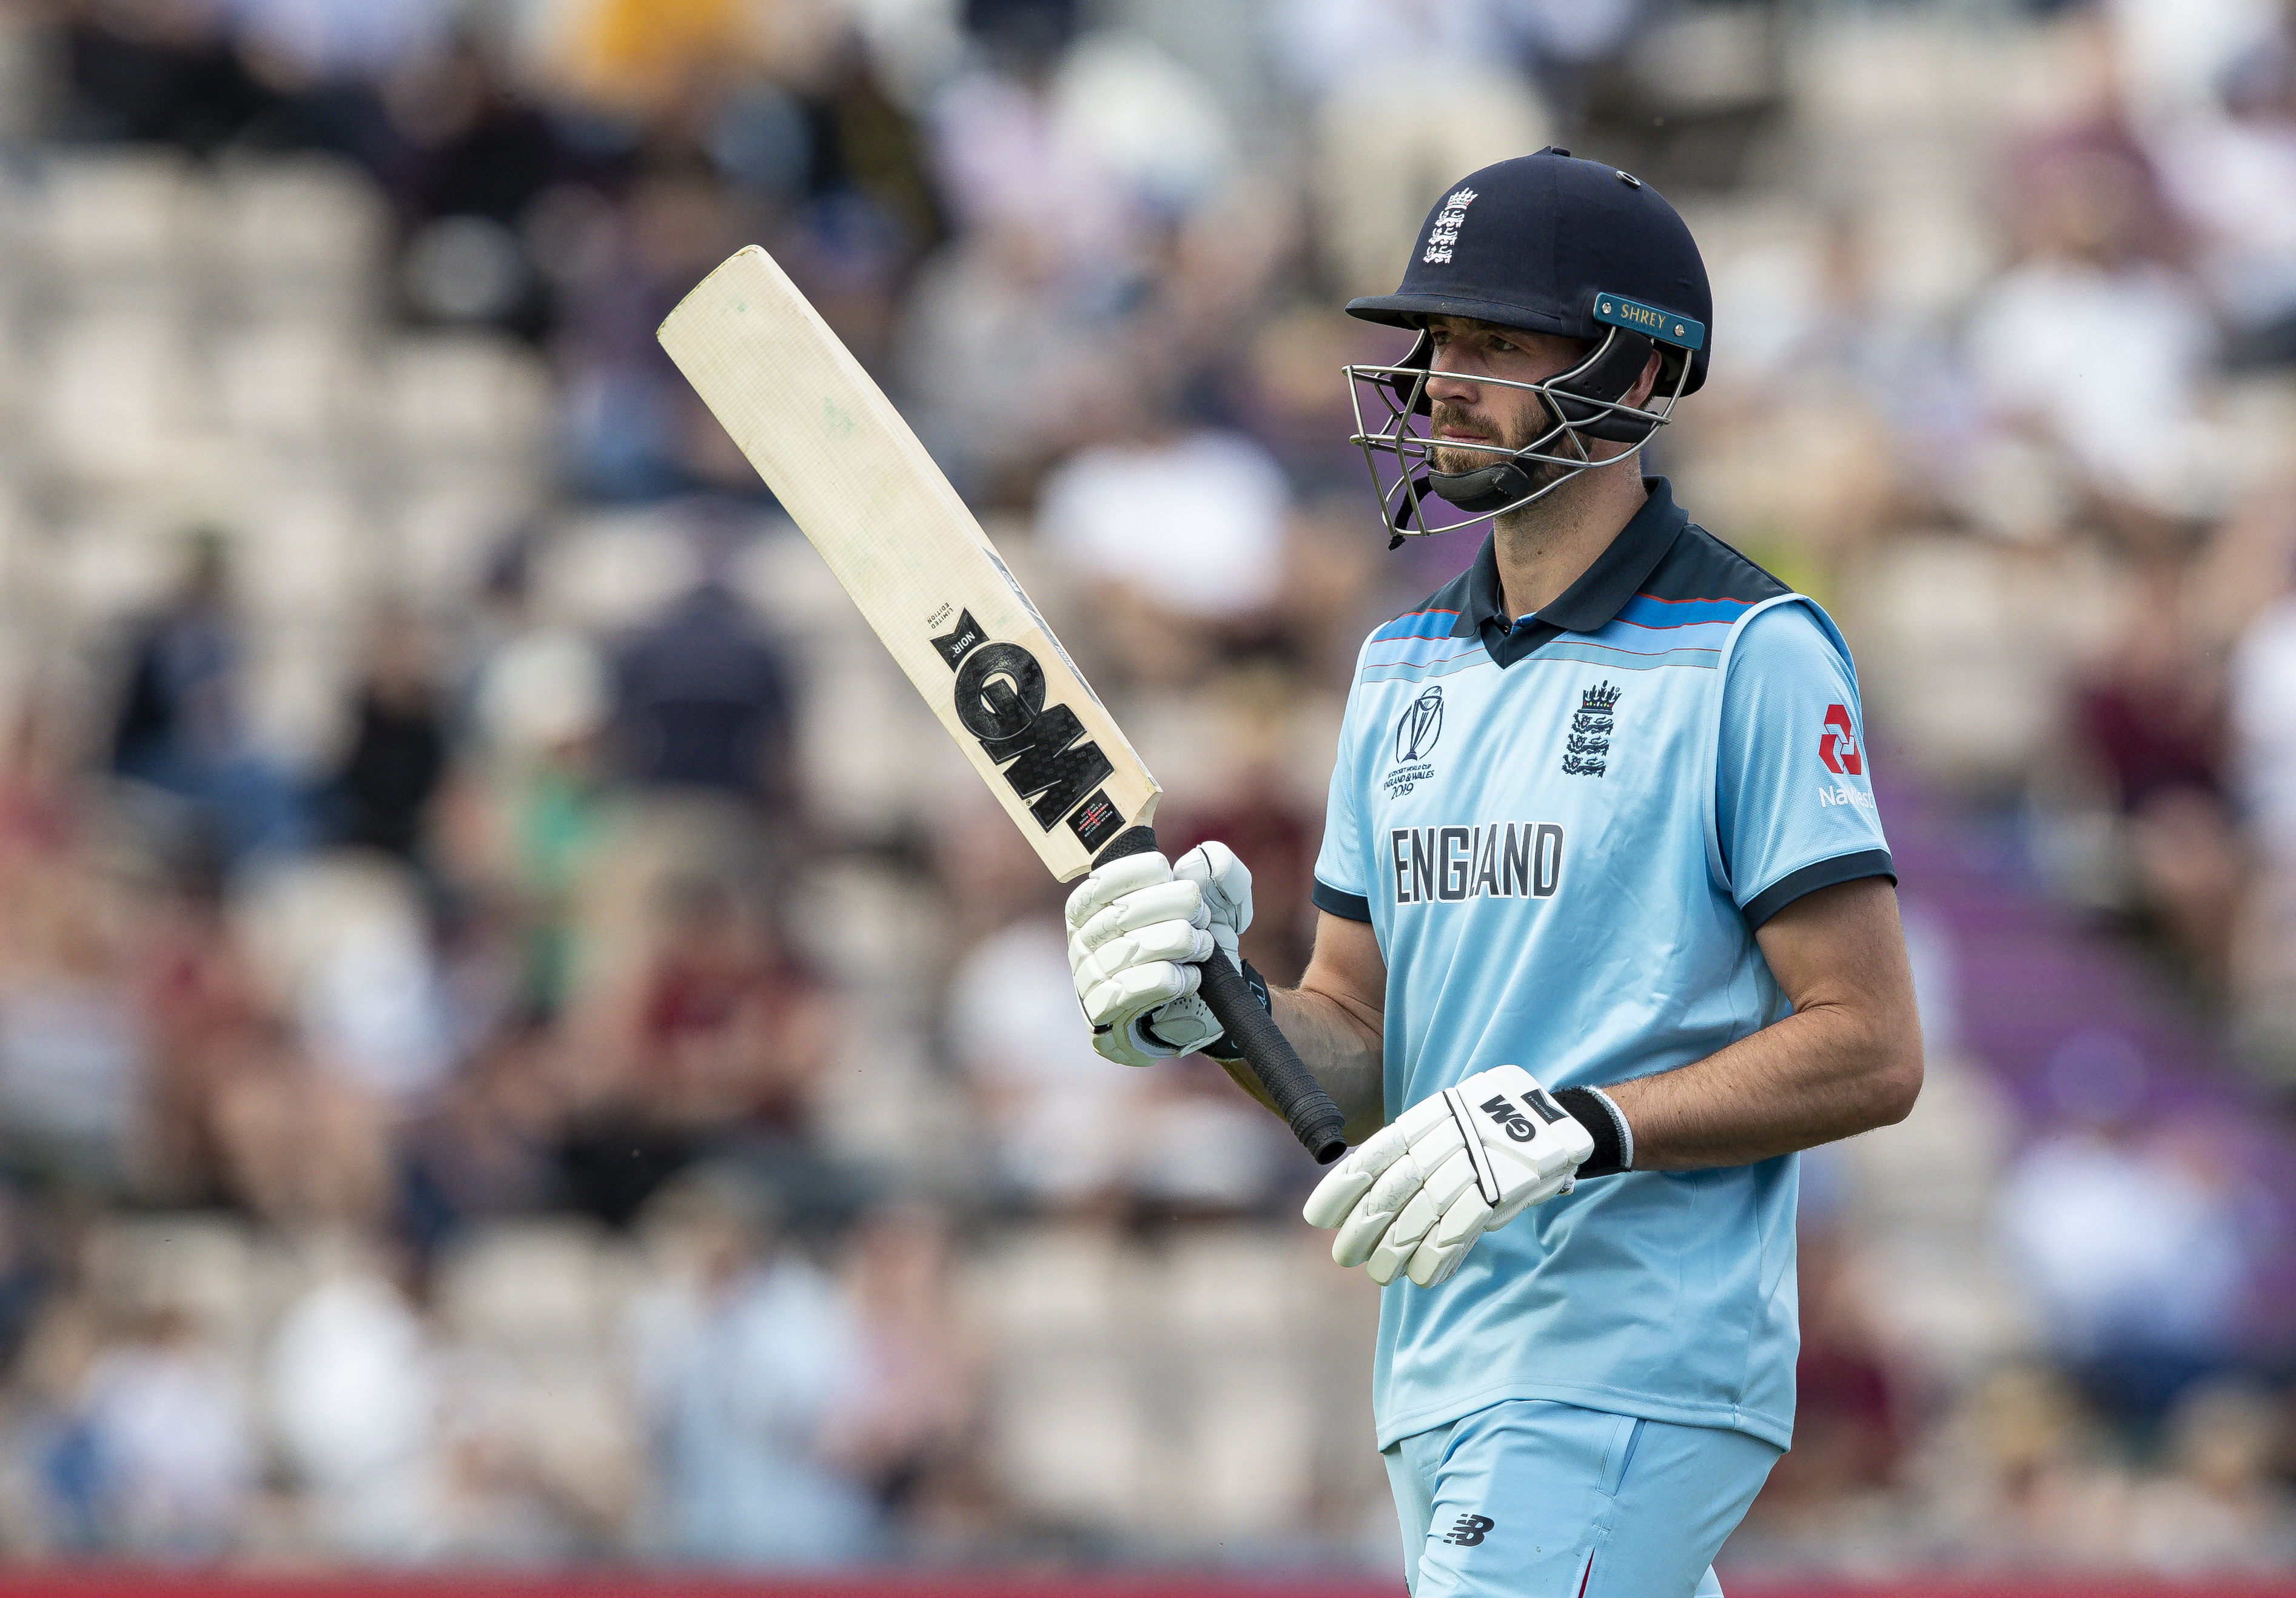 Cricket Betting Tips: Runs to flow for England's openers despite Roy's absence